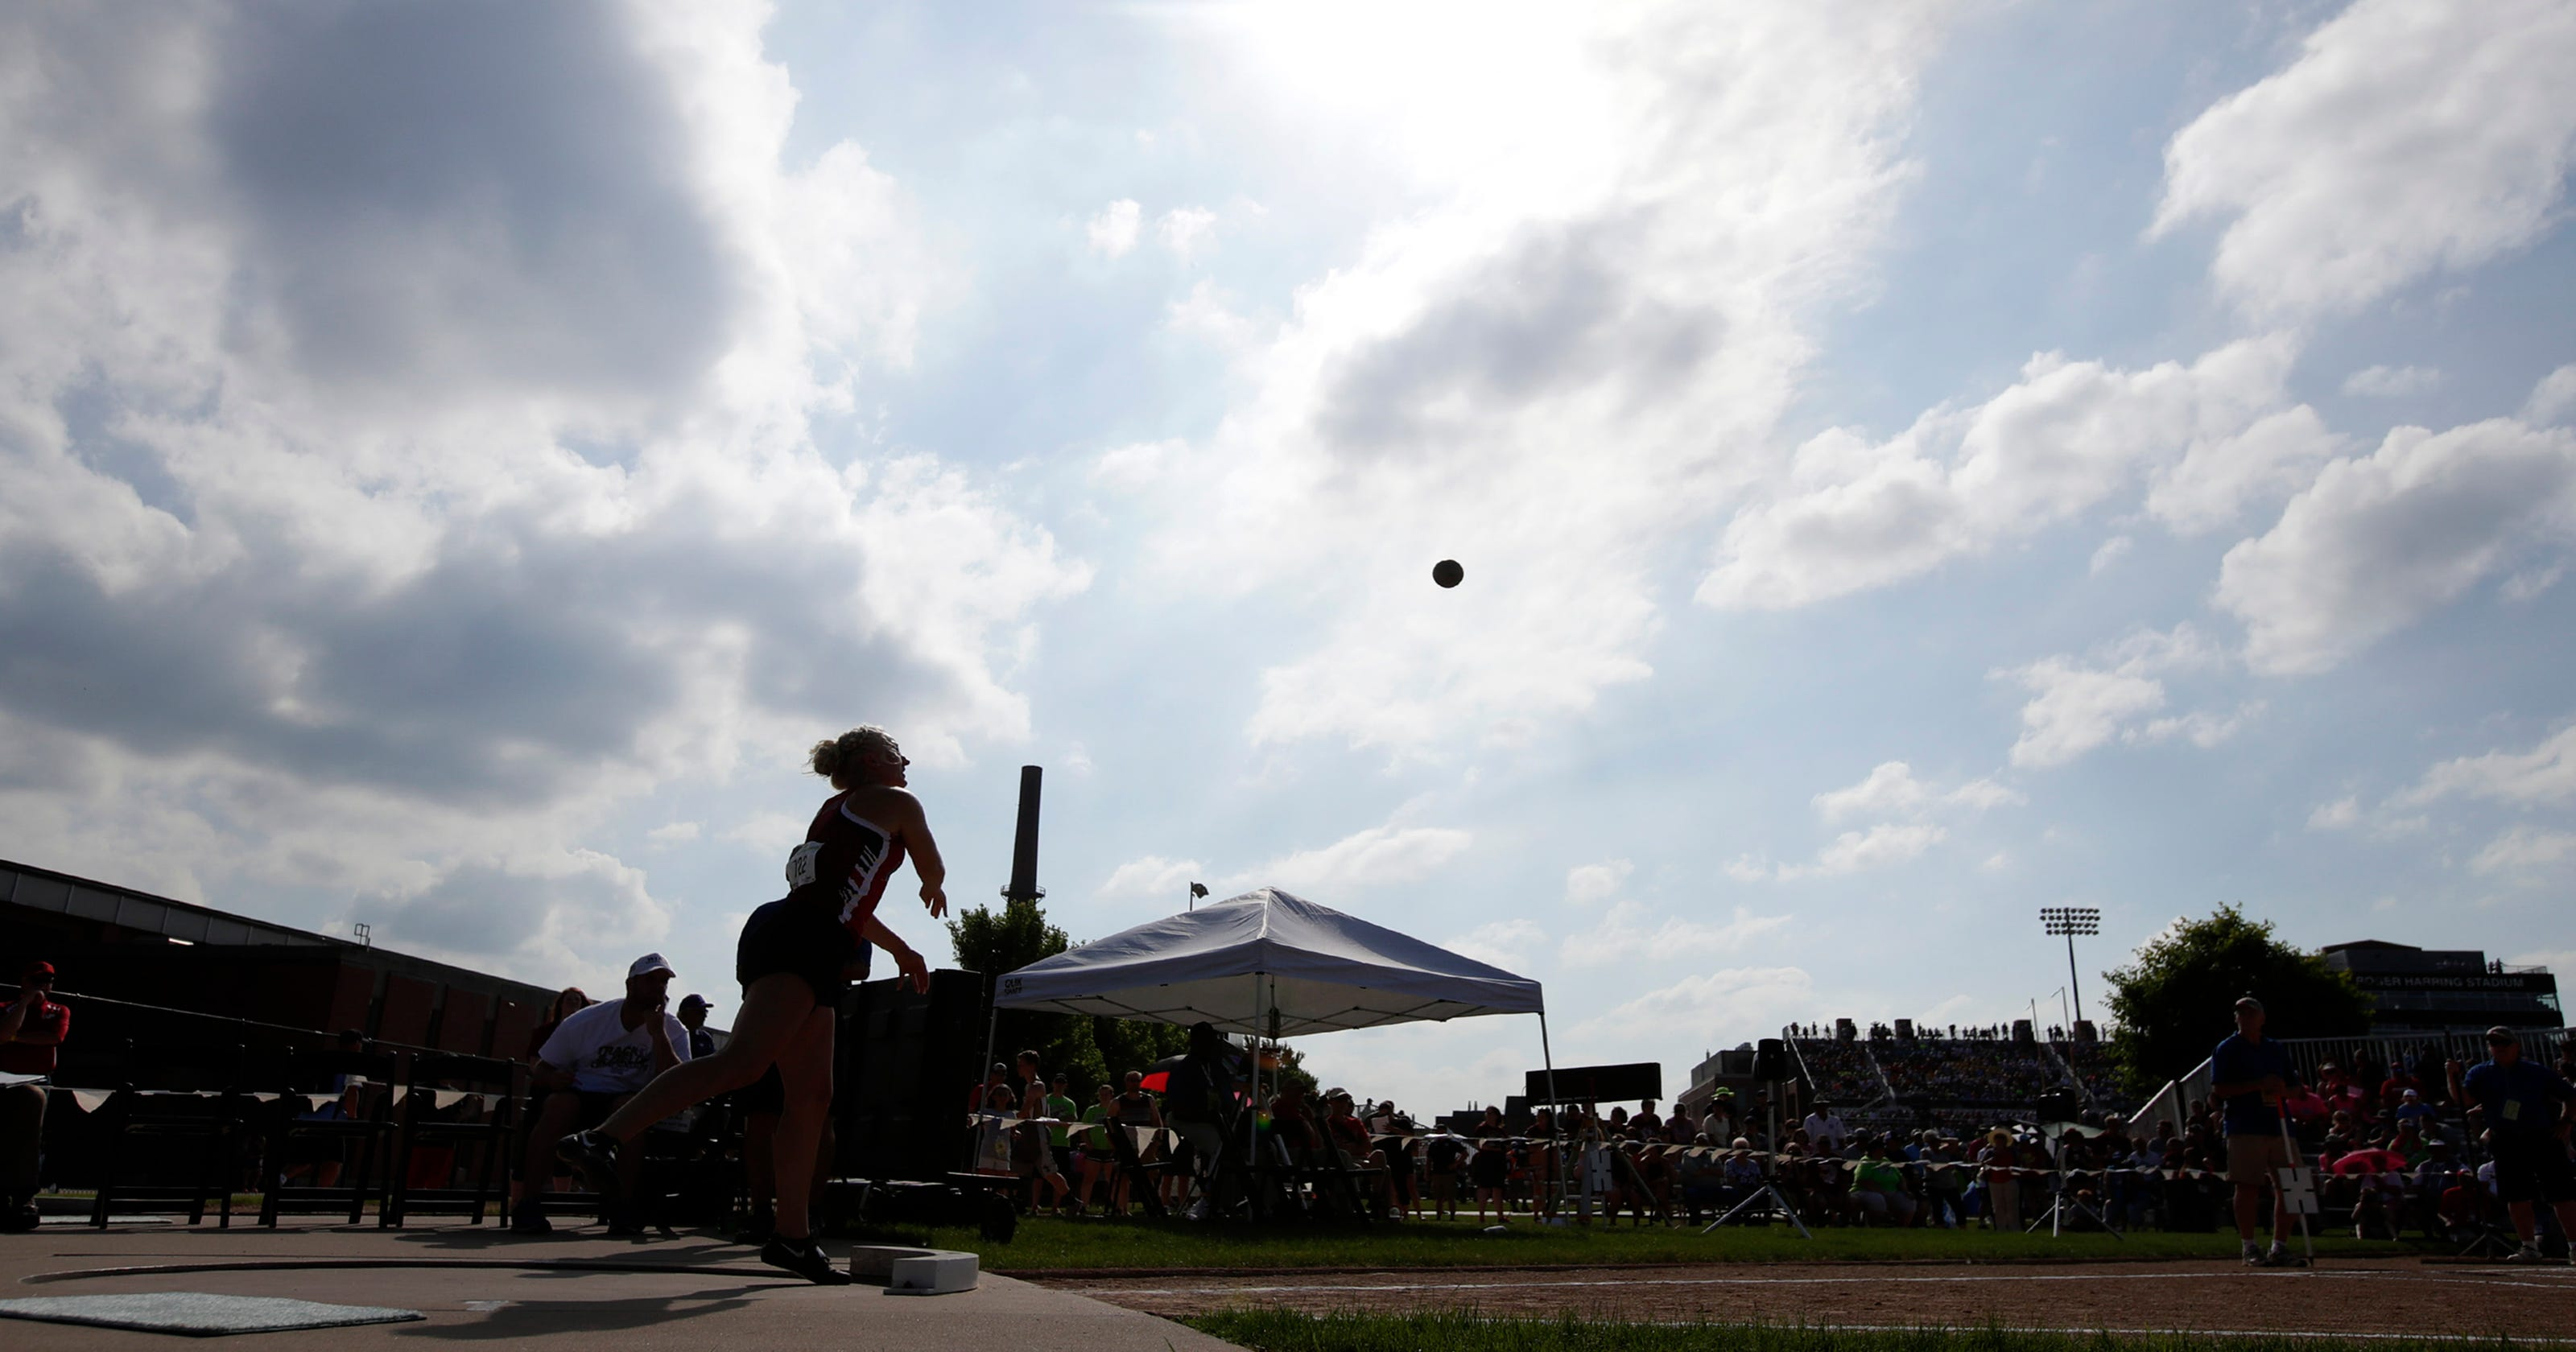 reputable site 532a3 6375d WIAA state track and field: Saturday's results